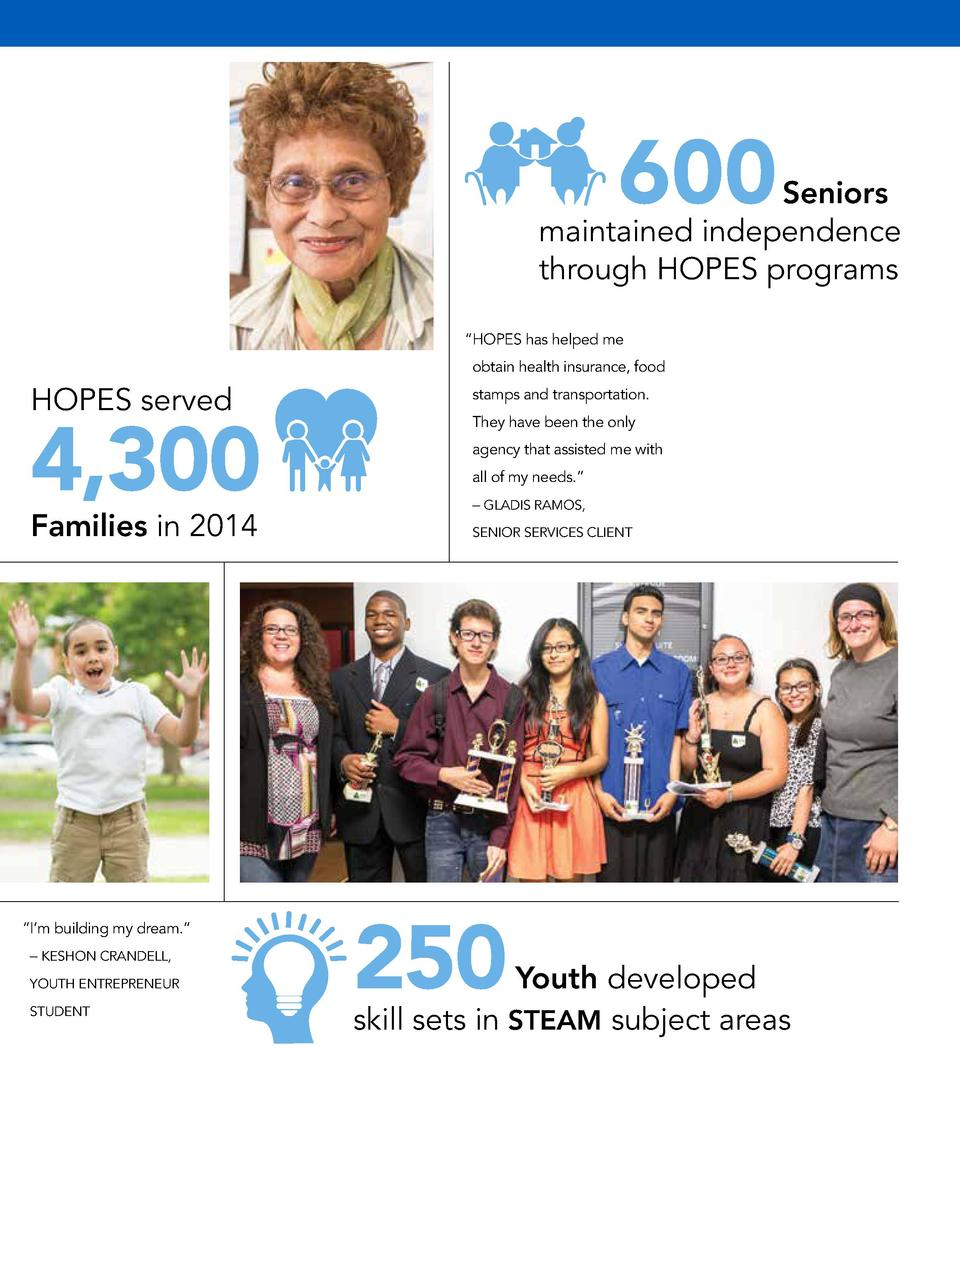 600  Seniors maintained independence through HOPES programs      OPES has helped me H obtain health insurance, food  HOPES...